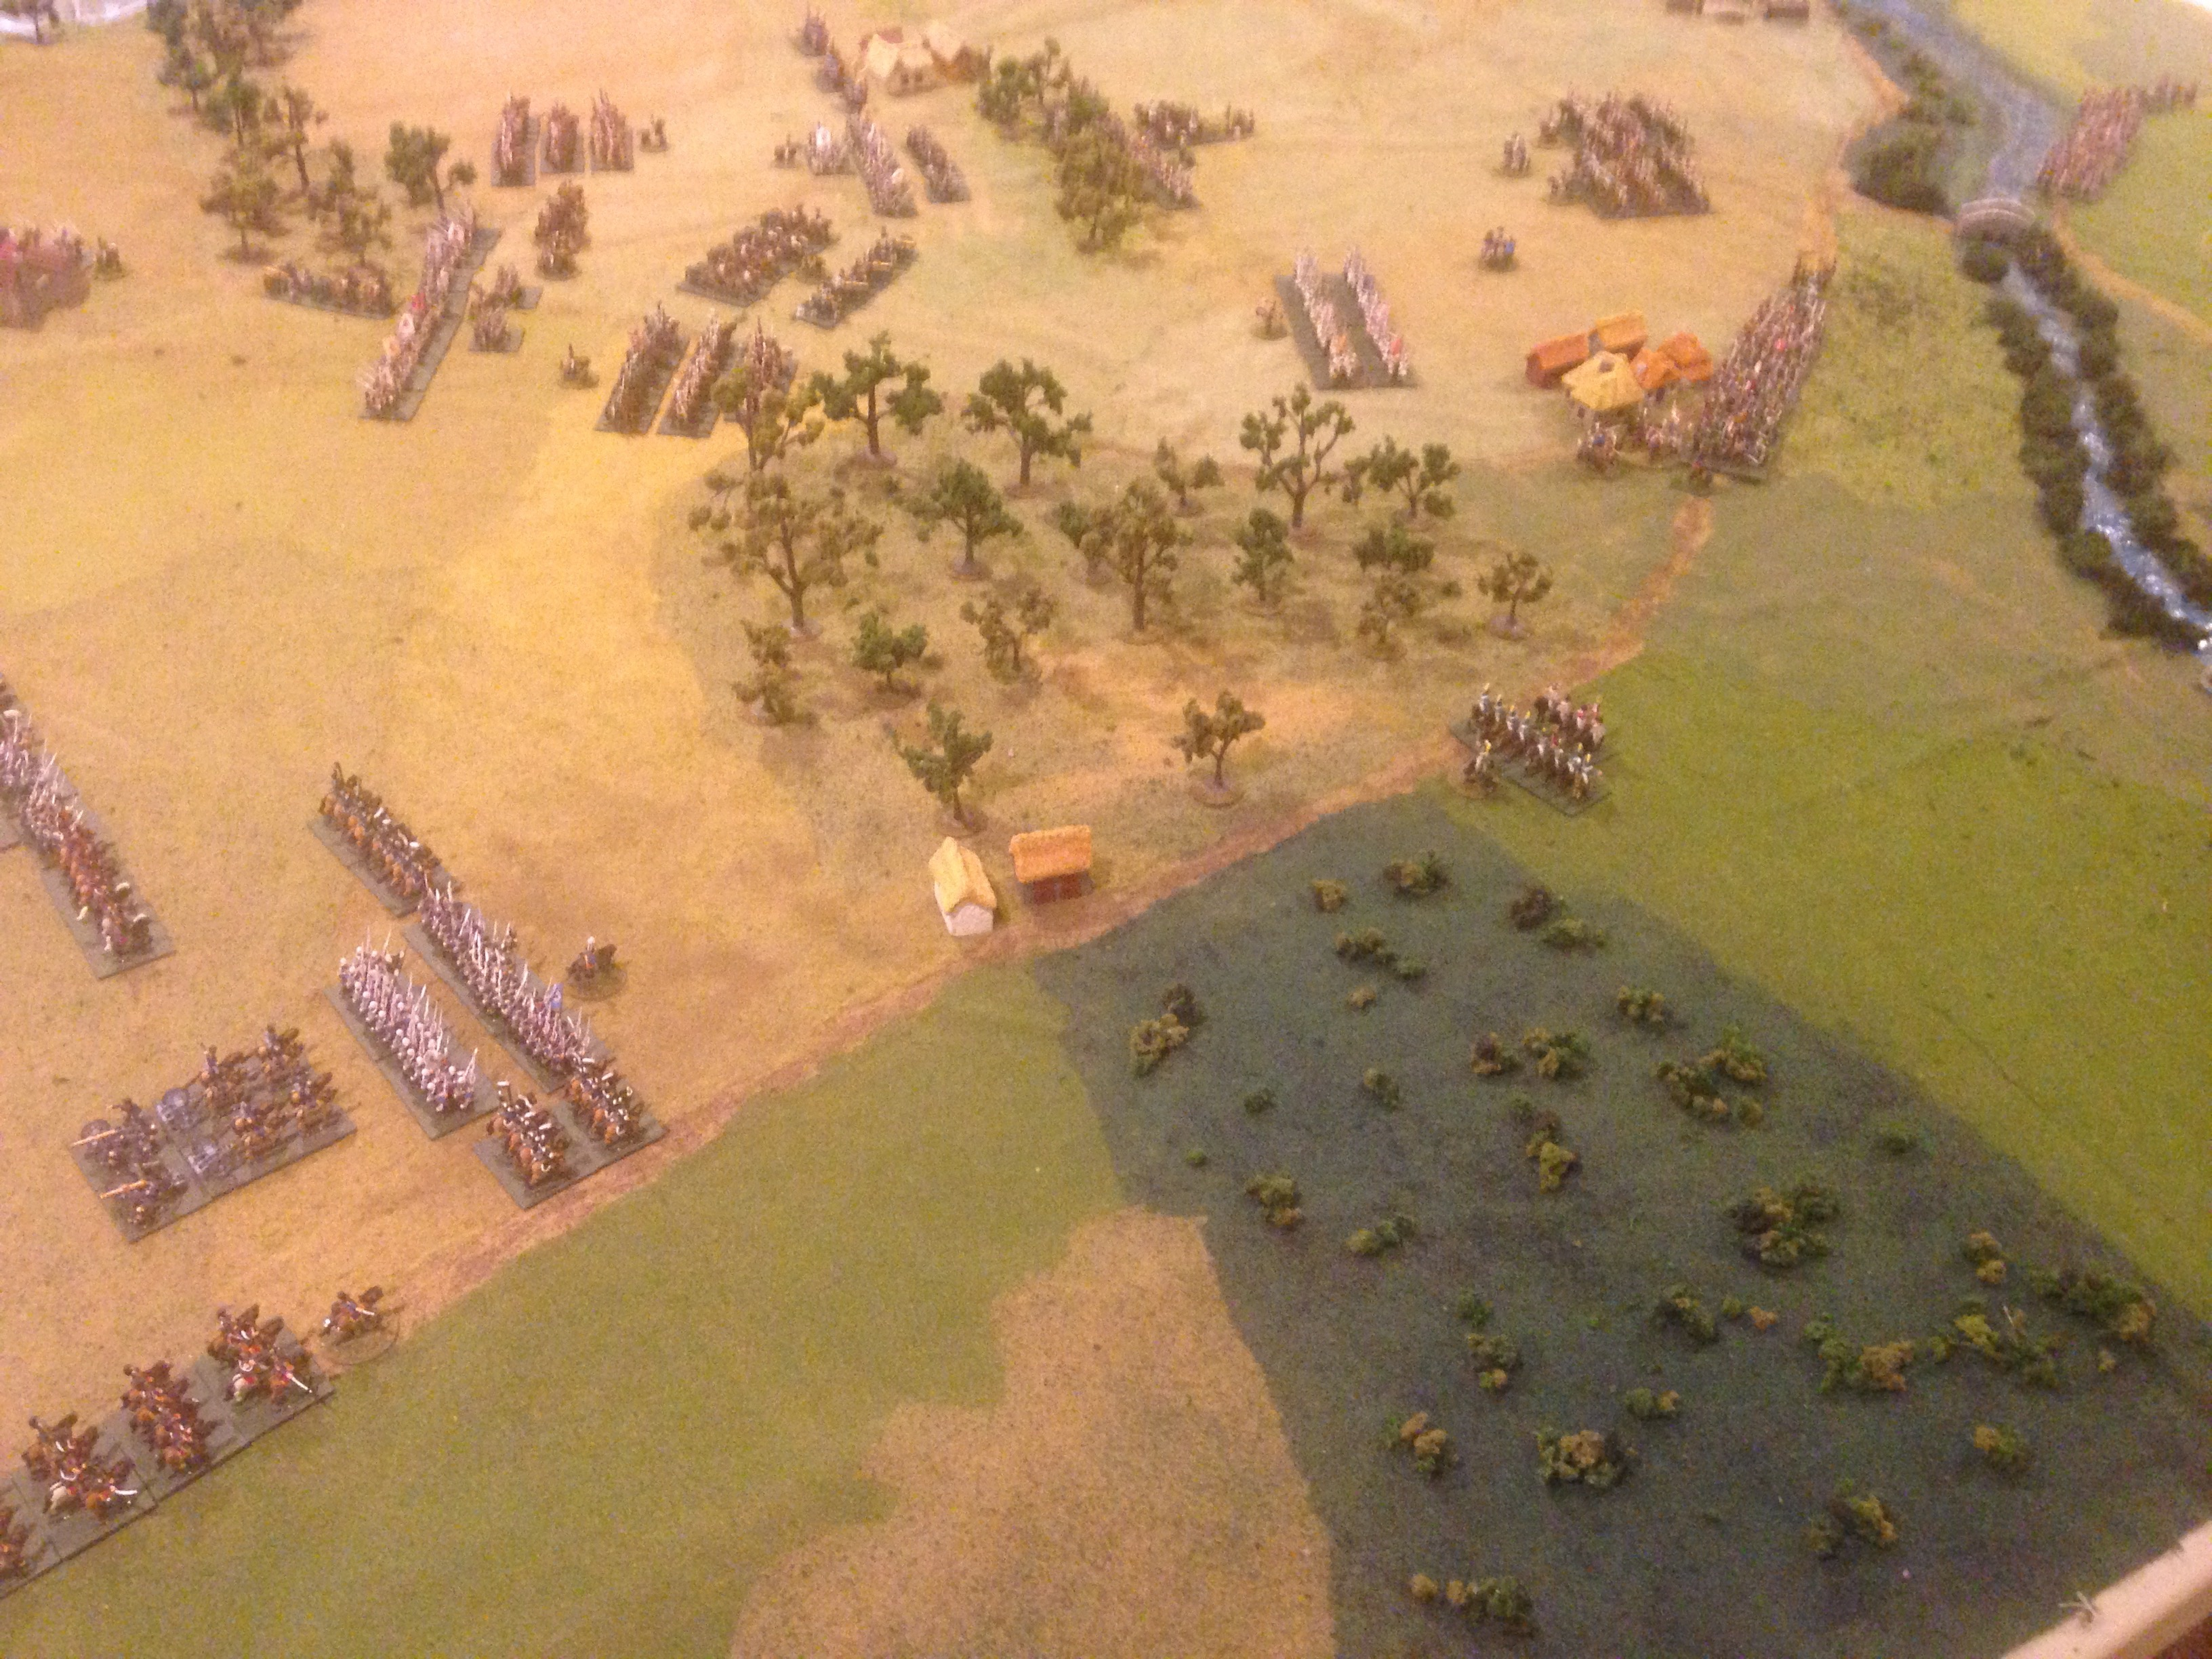 View of the developing French left wing opposed by the Prussians.